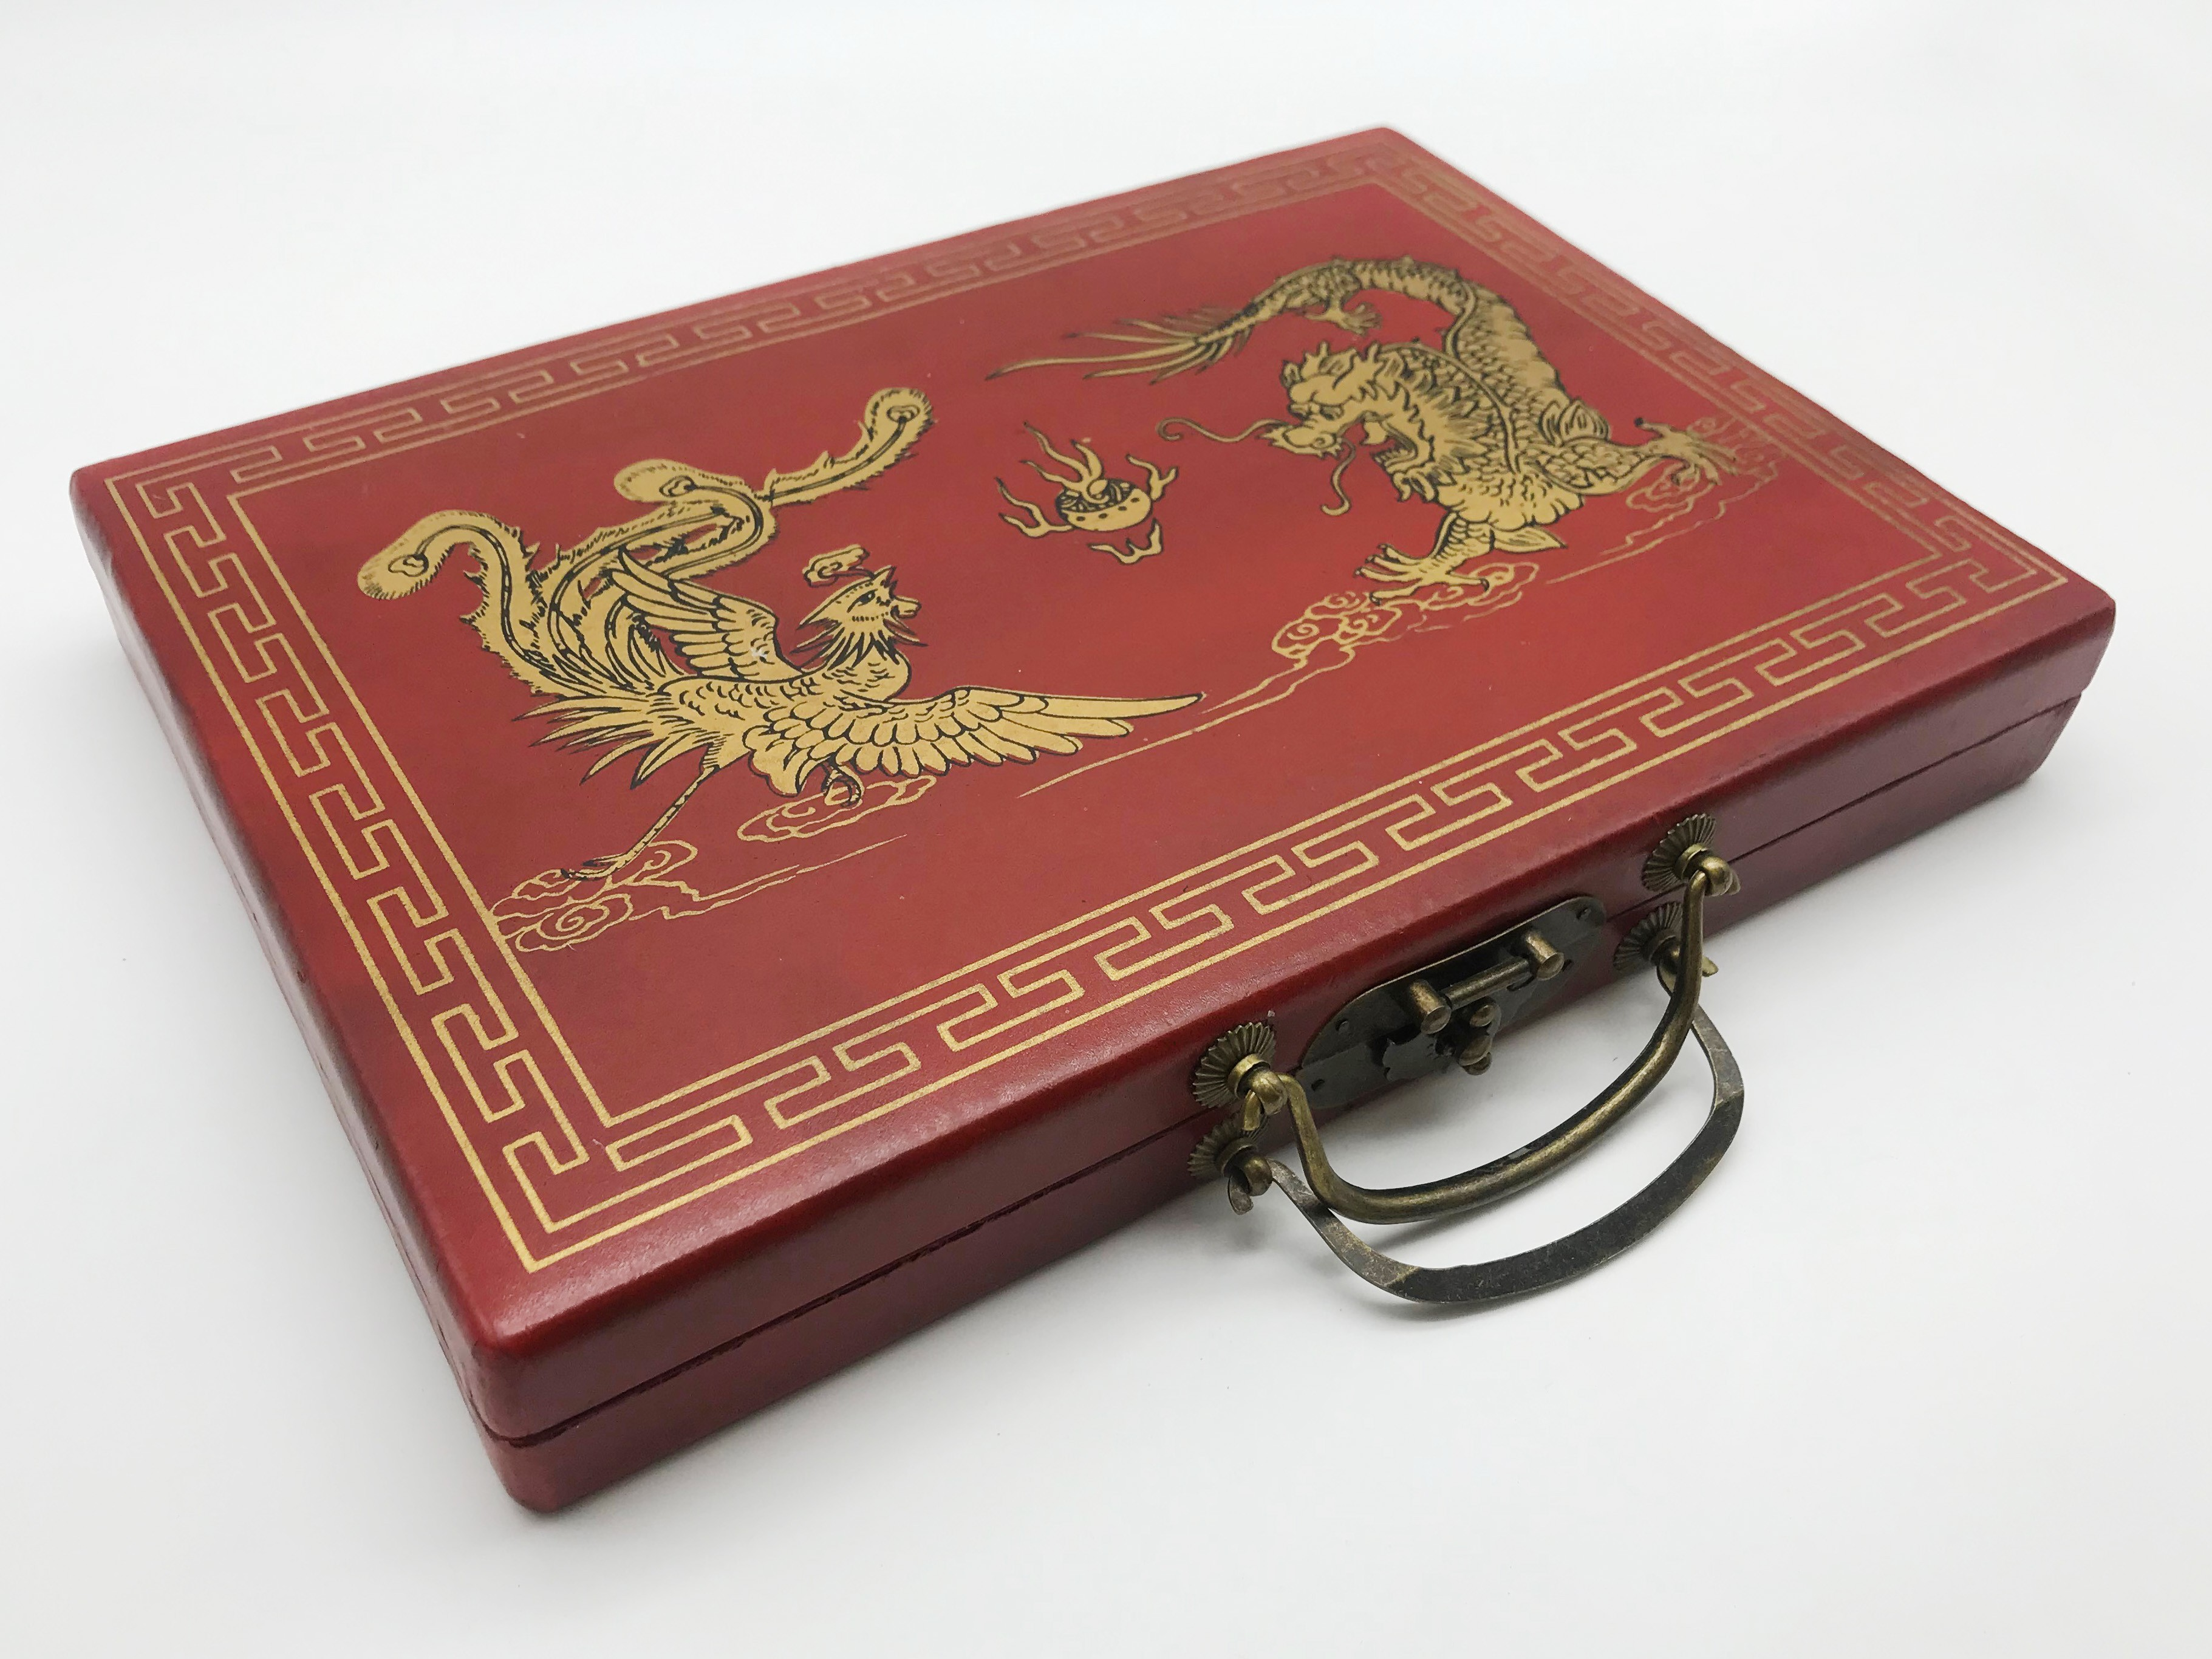 Lot 100 - VINTAGE MAH JONGG GAME CASED